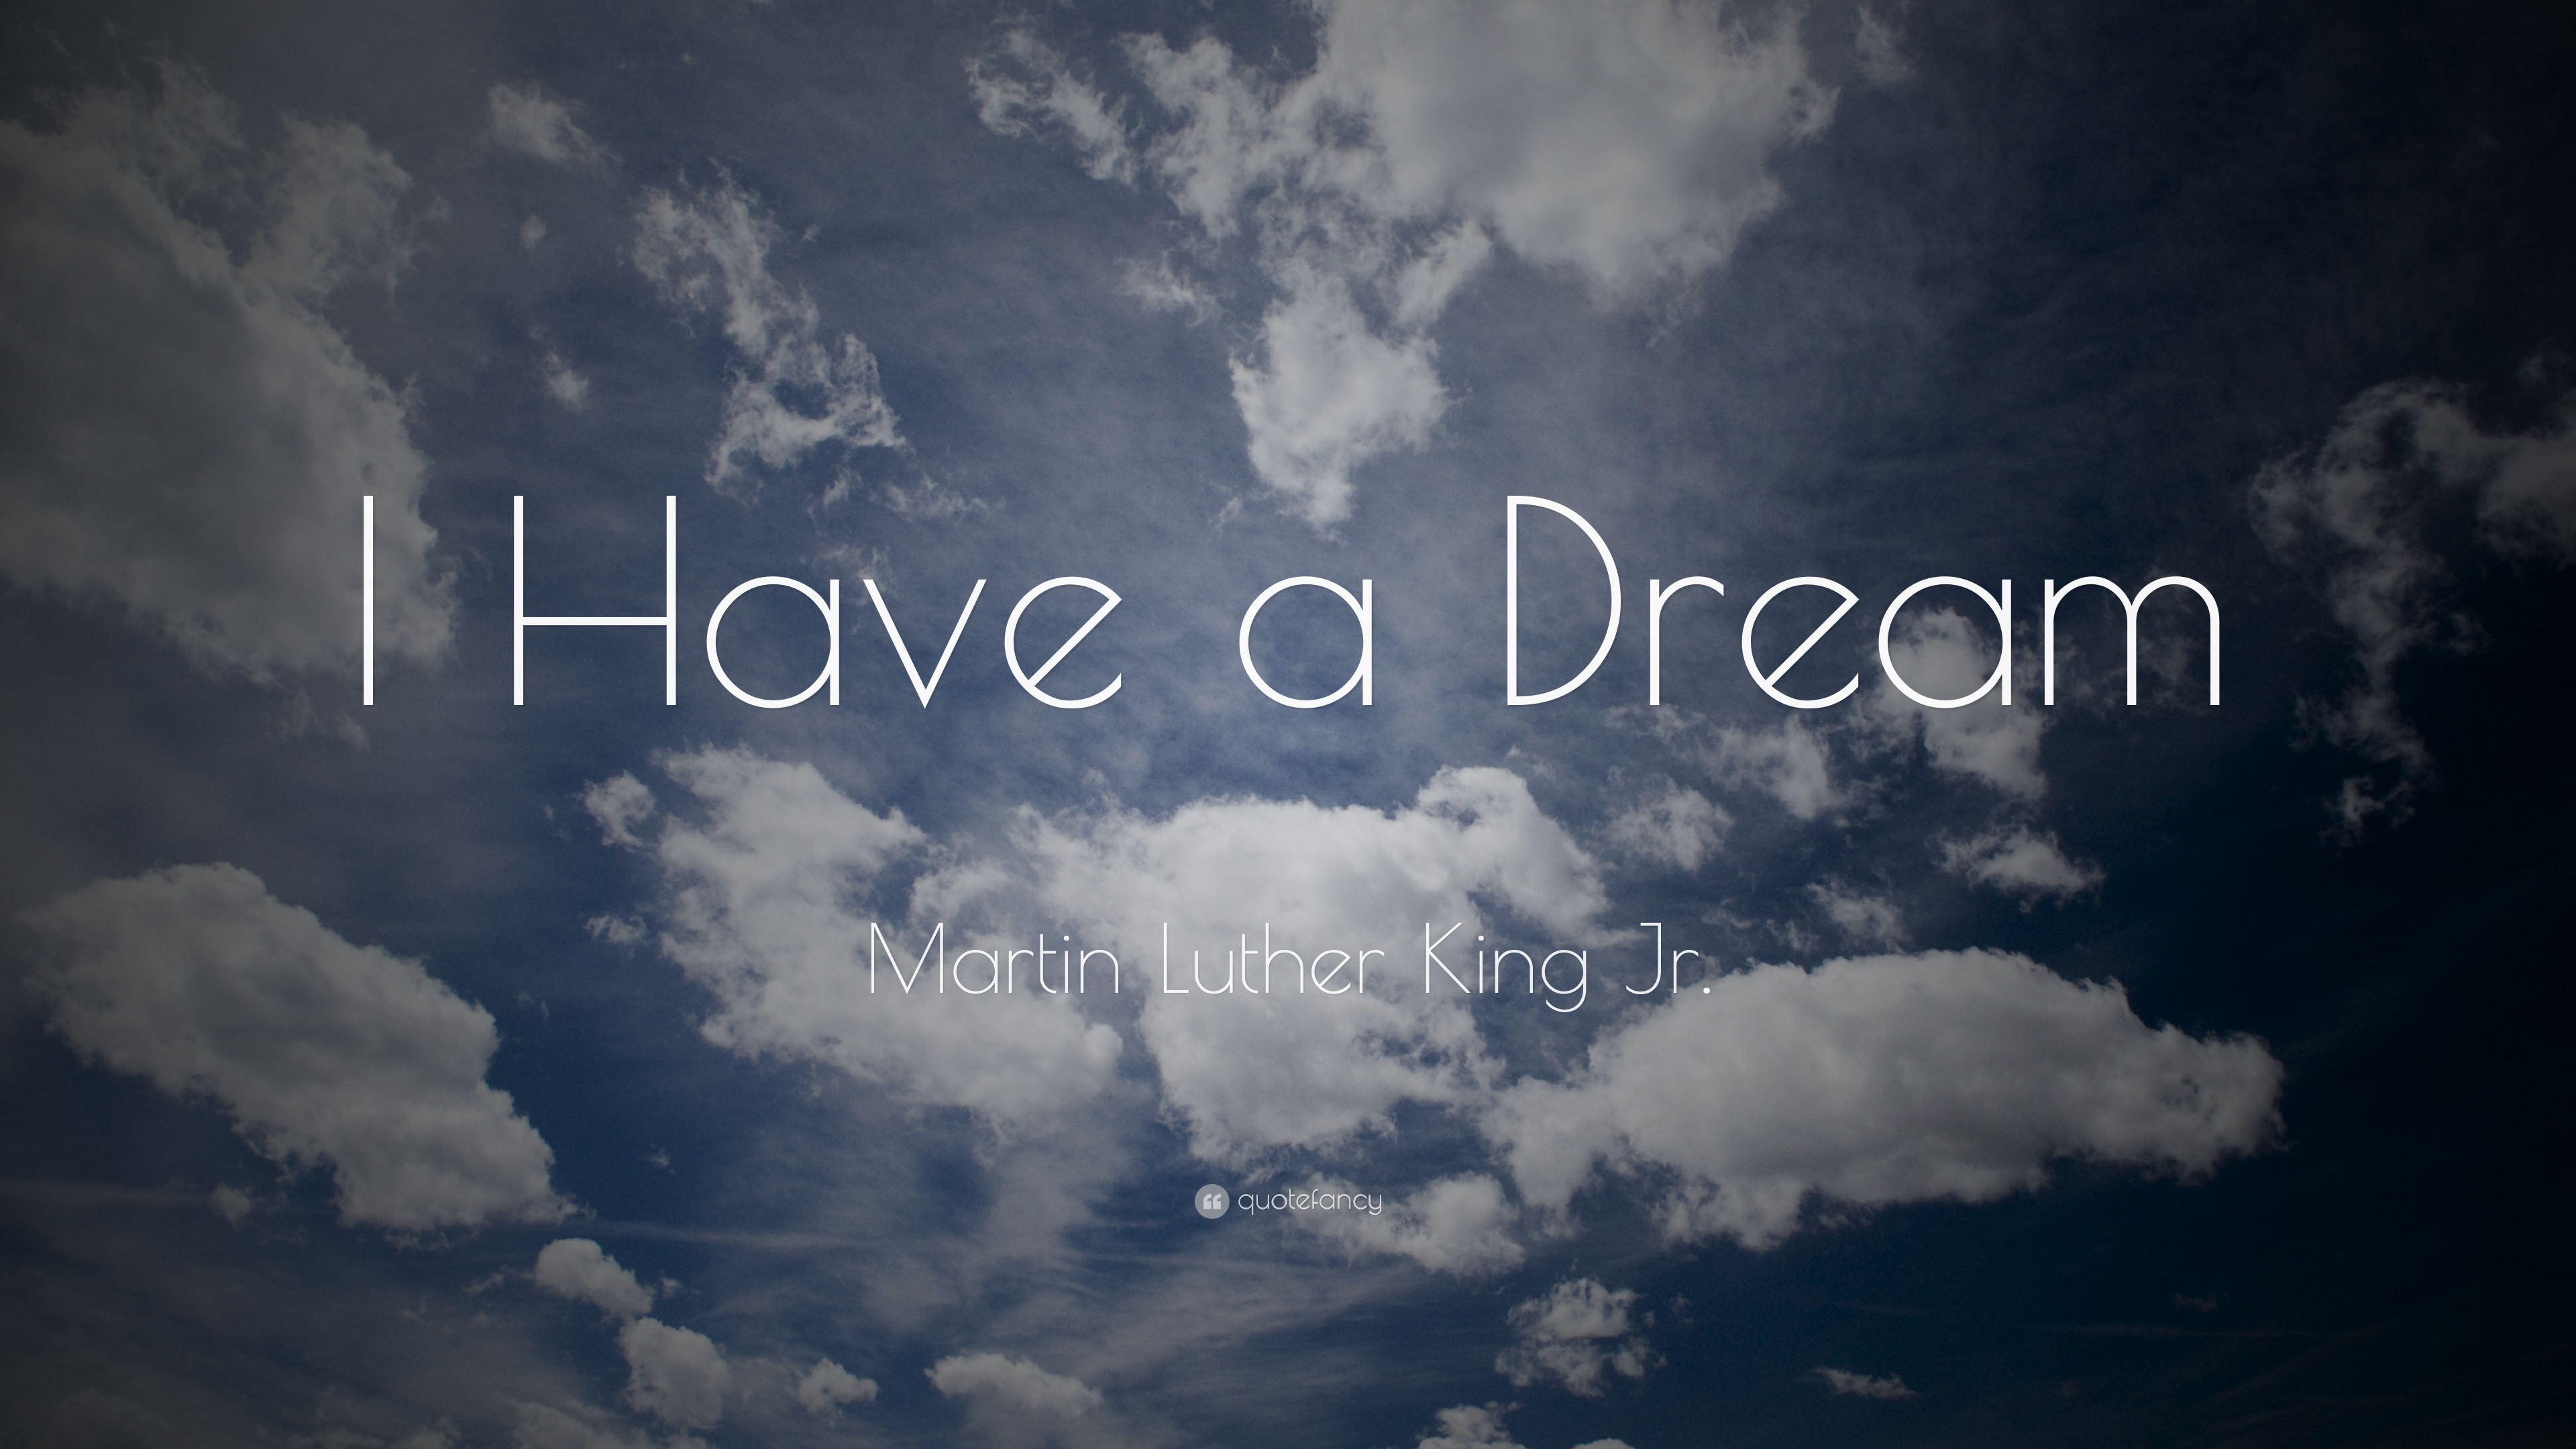 Martin Luther King Jr Quotes 100 Wallpapers